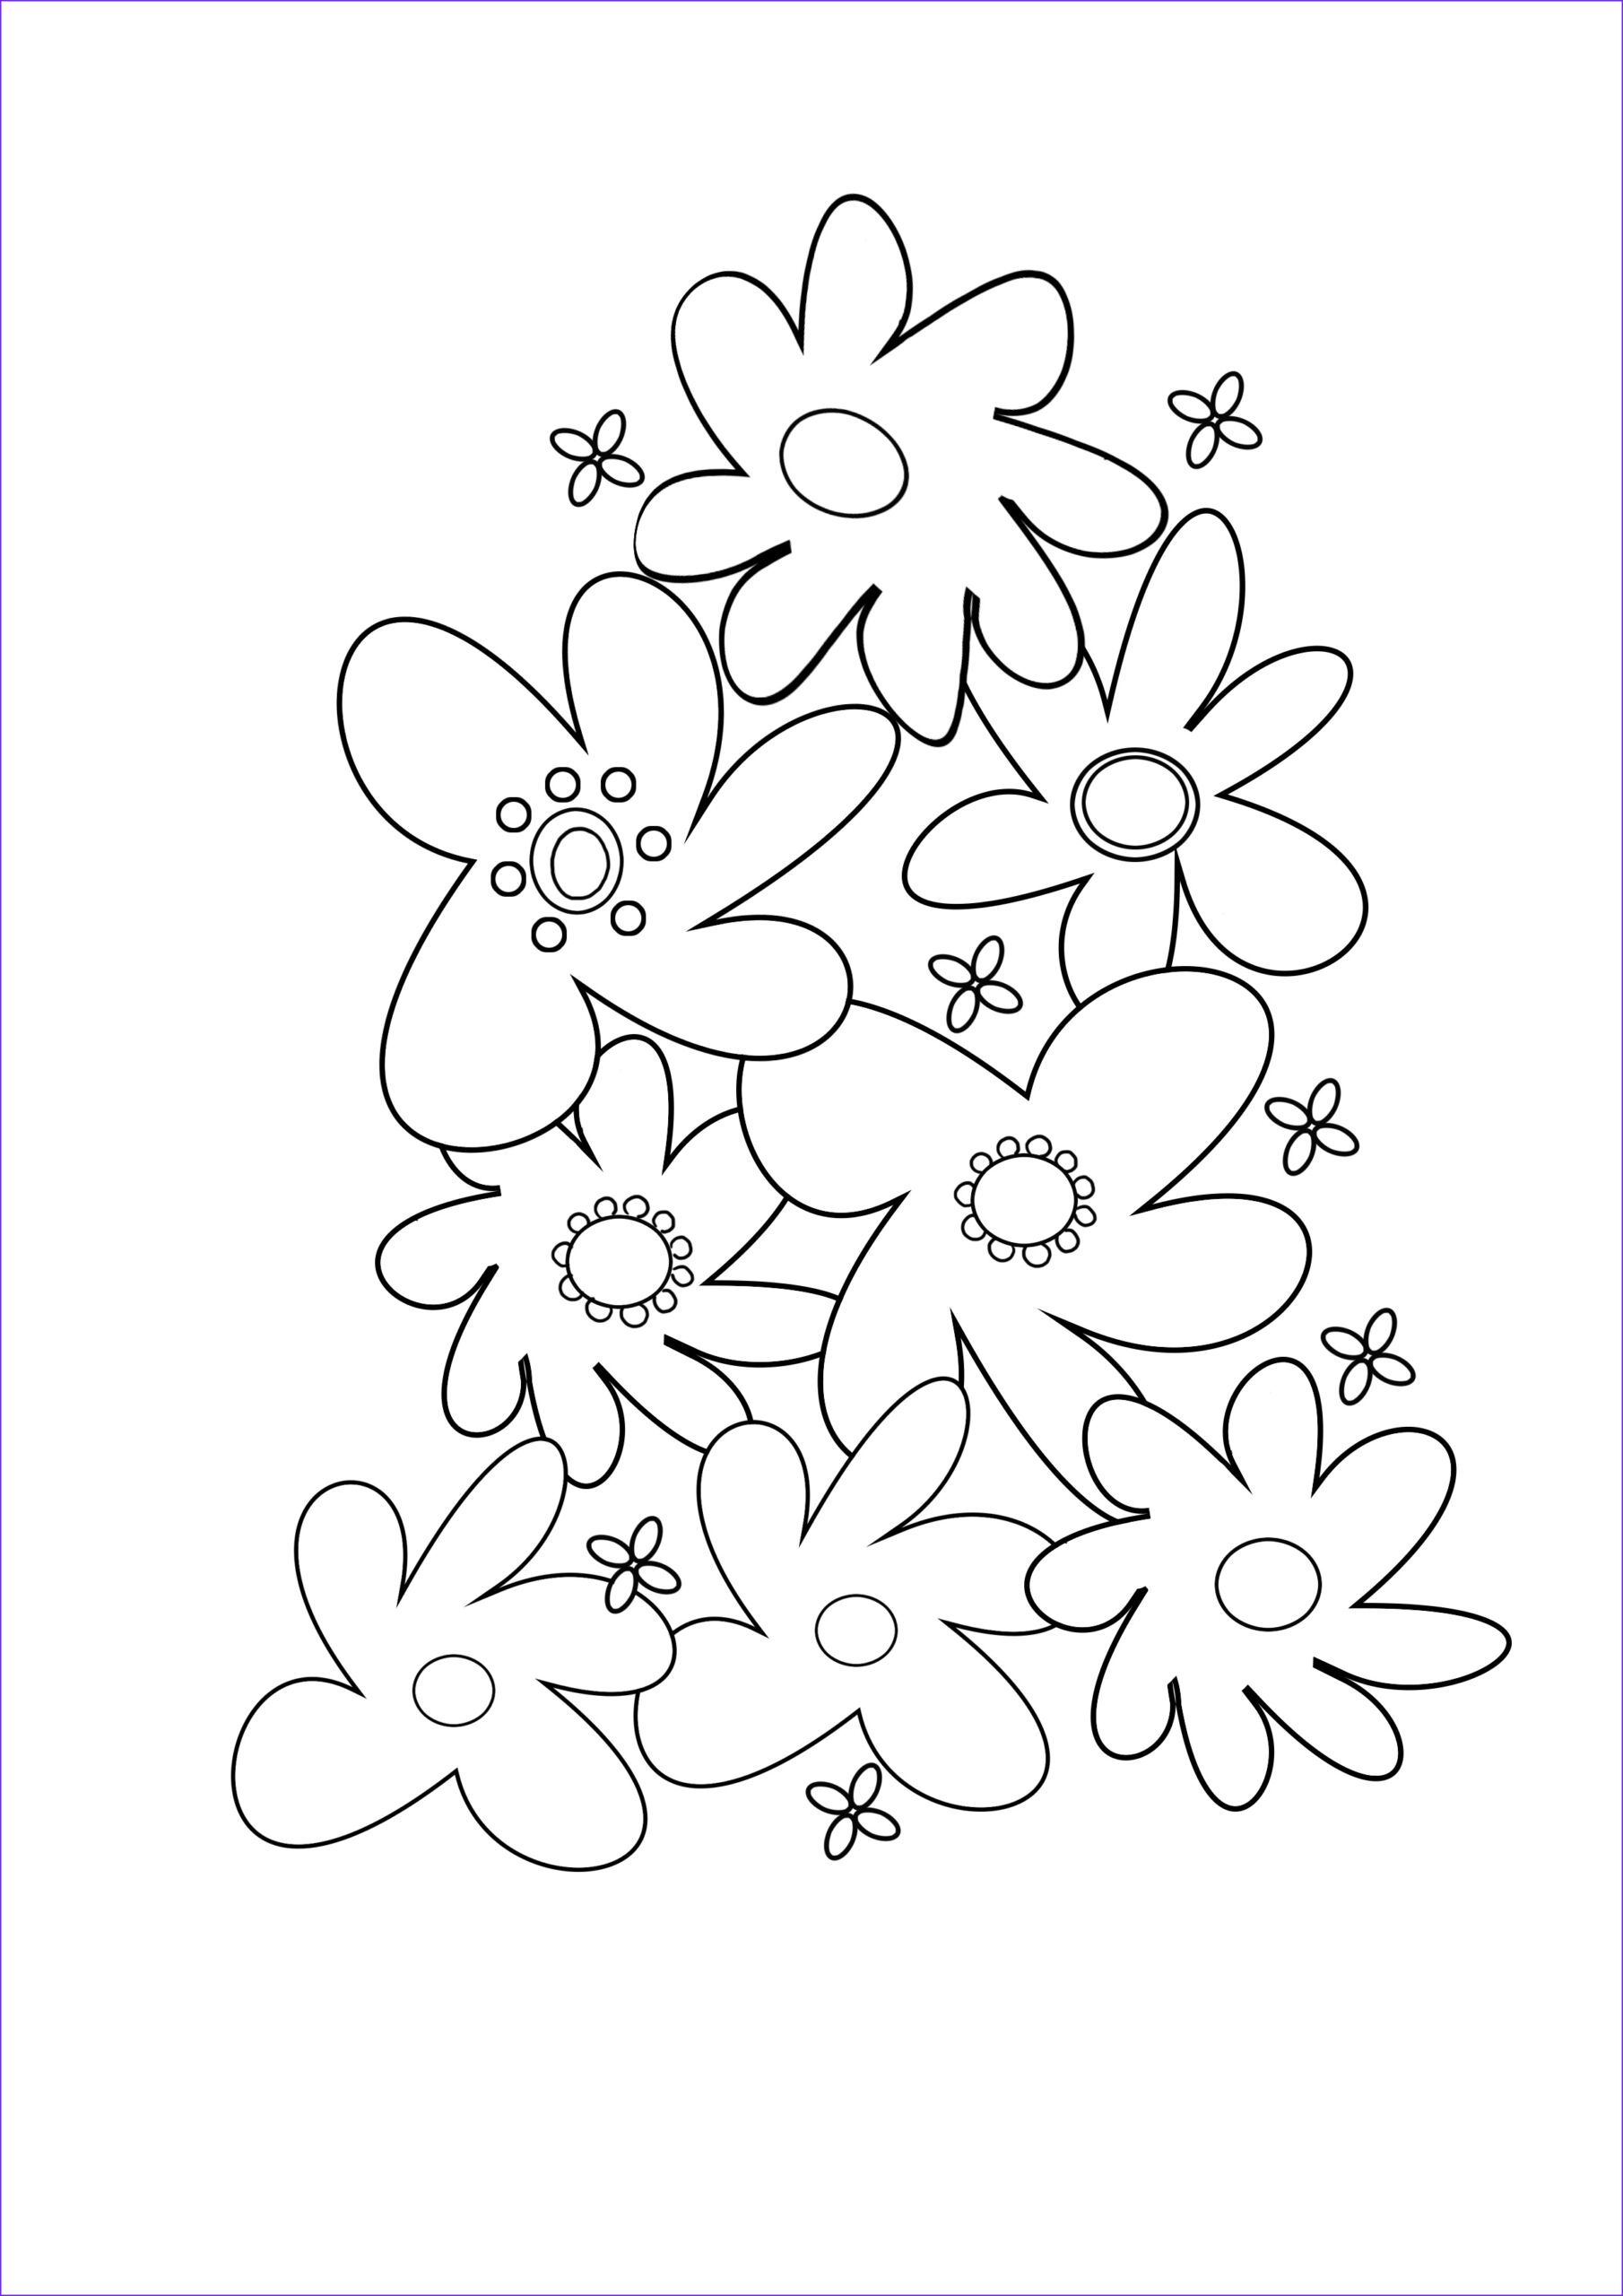 Coloring Page Of A Flower Best Of Stock Flower Coloring Pages